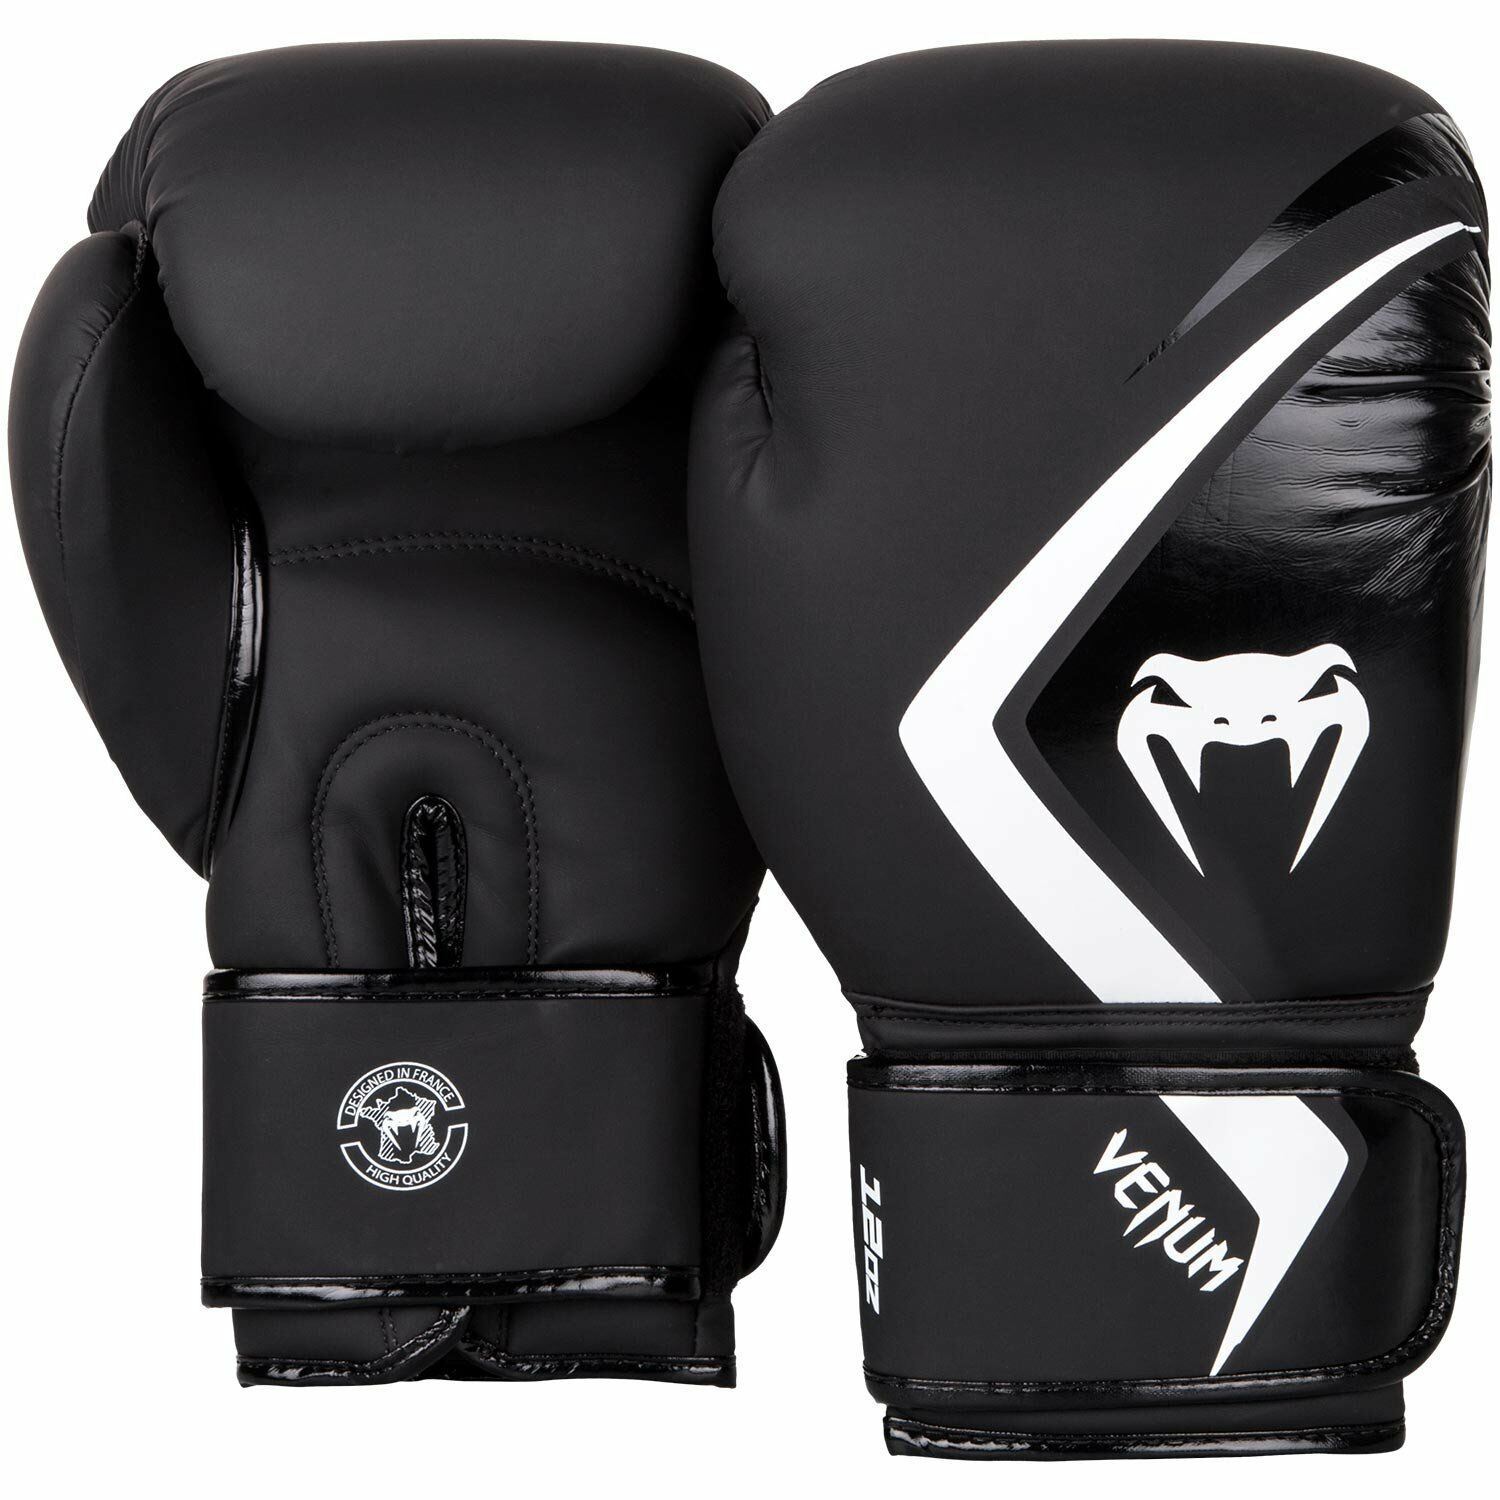 RDX C4 Professionell Sparring Boxhandschuhe Muay Thai Sparring Kickboxen